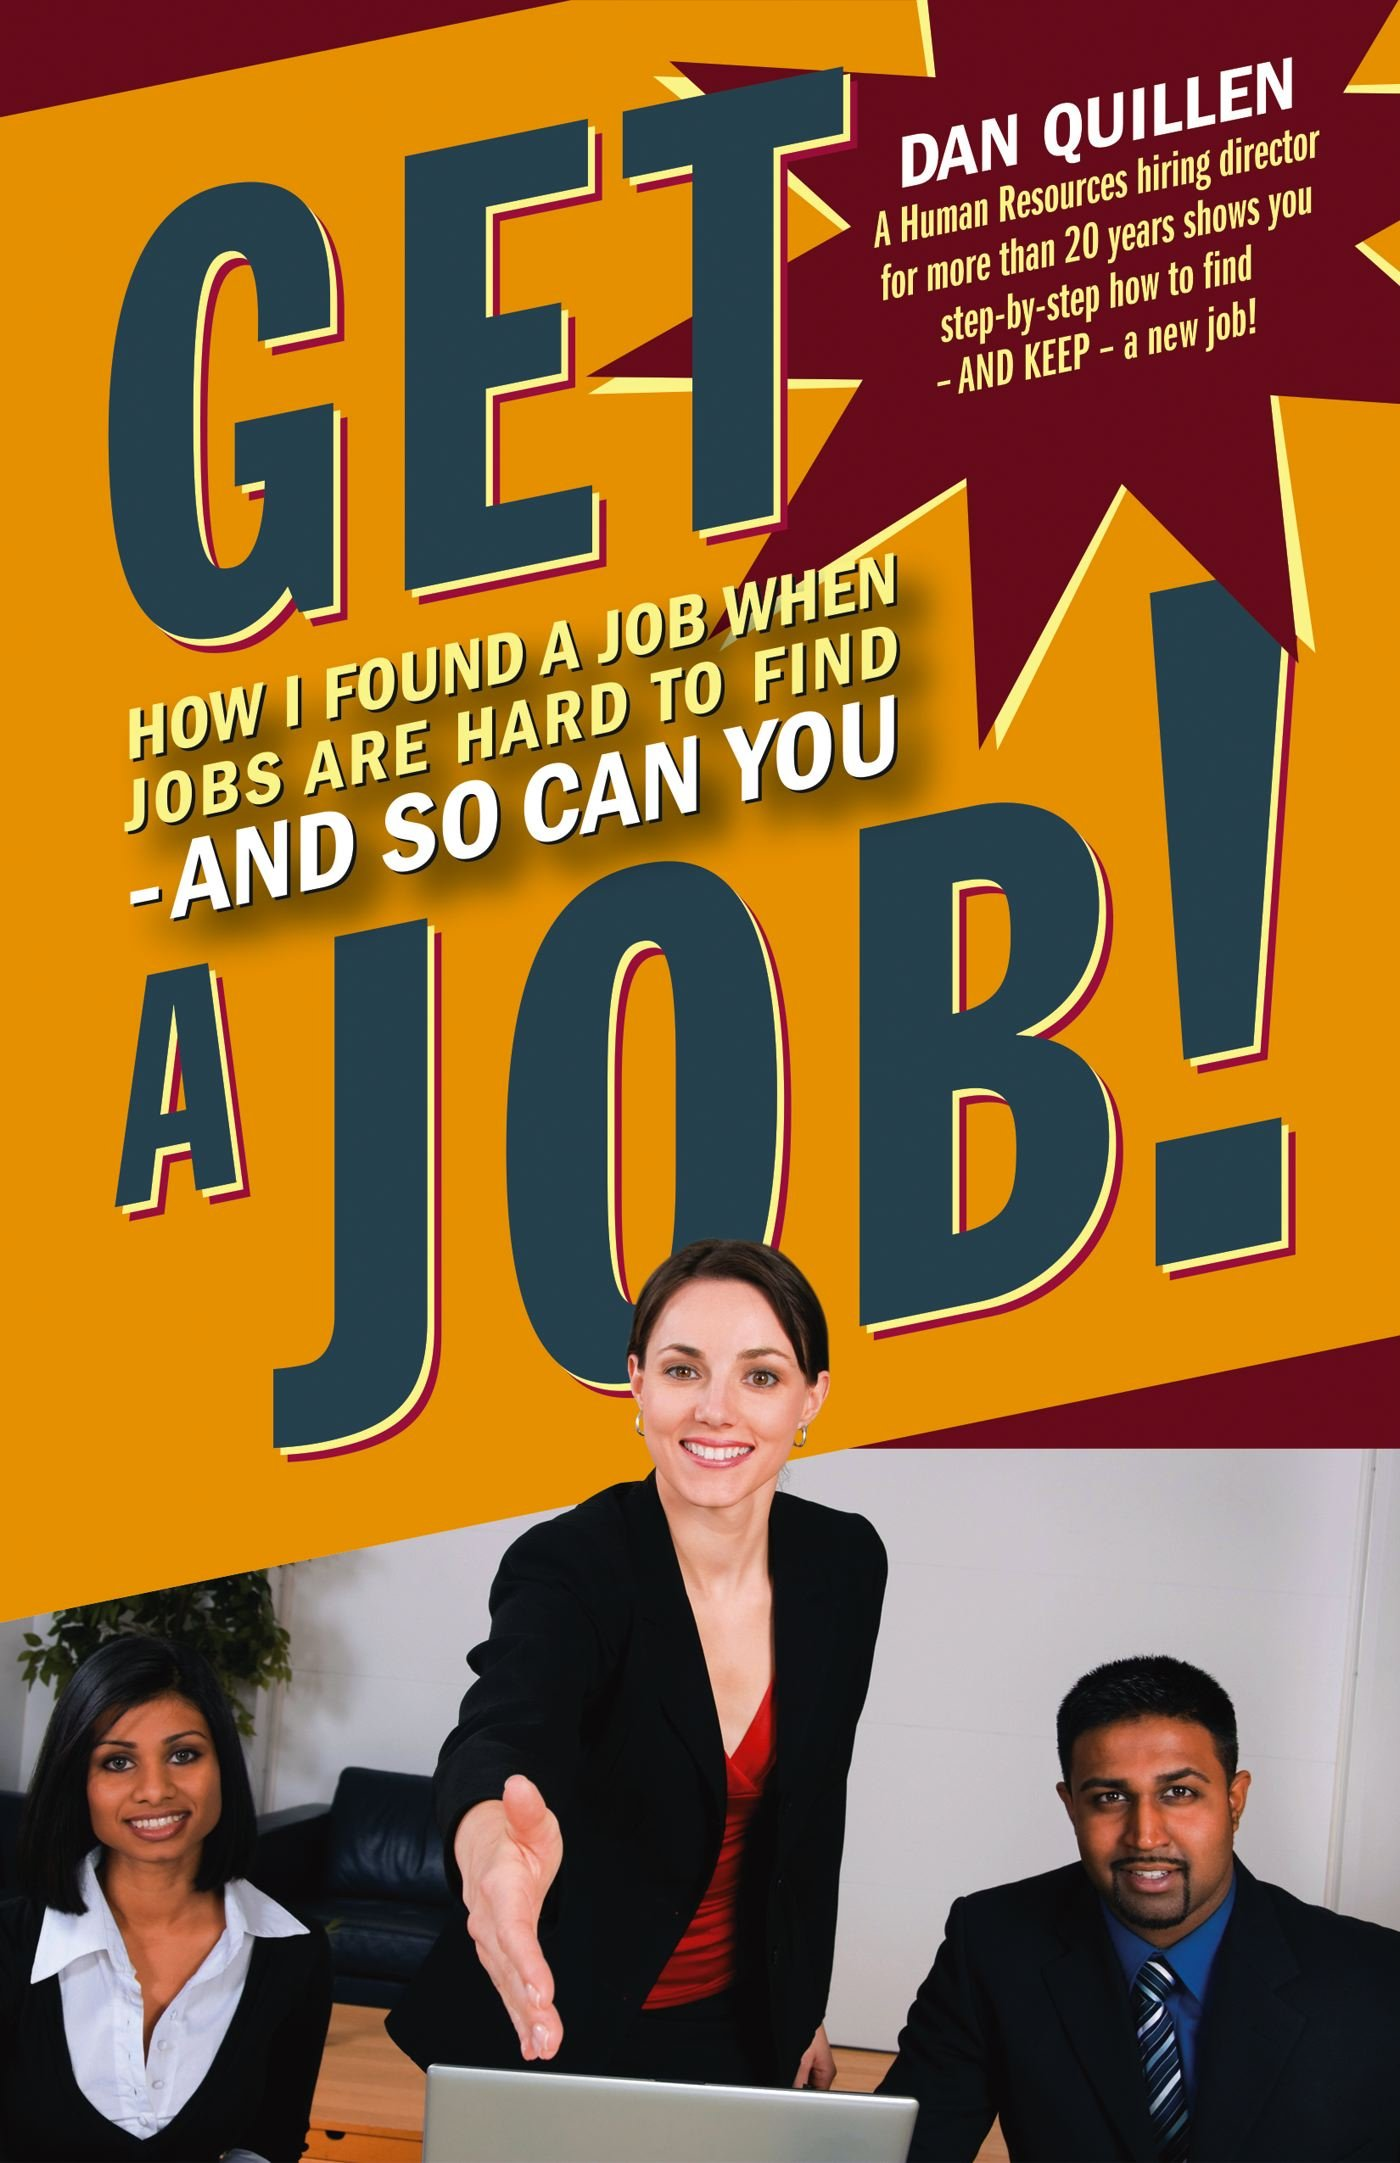 get a job how i found a job when jobs are hard to and so get a job how i found a job when jobs are hard to and so can you dan quillen 9781593601850 amazon com books